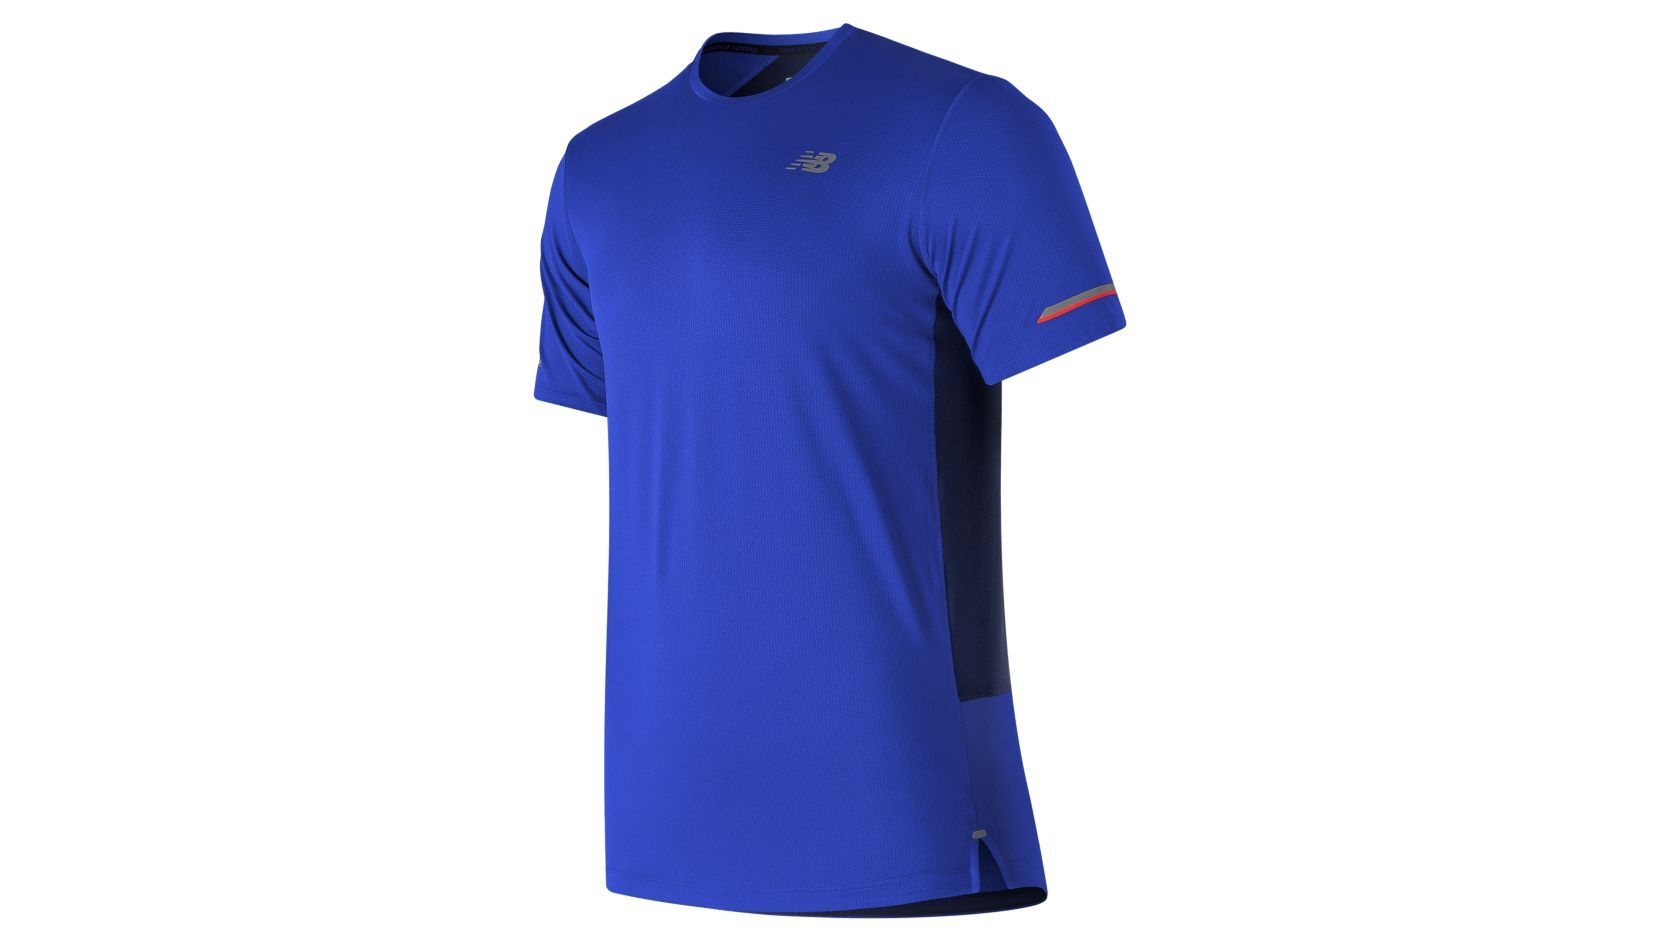 Купить Футболка NB Ice 2.0 Short Sleeve, MT81200/PC